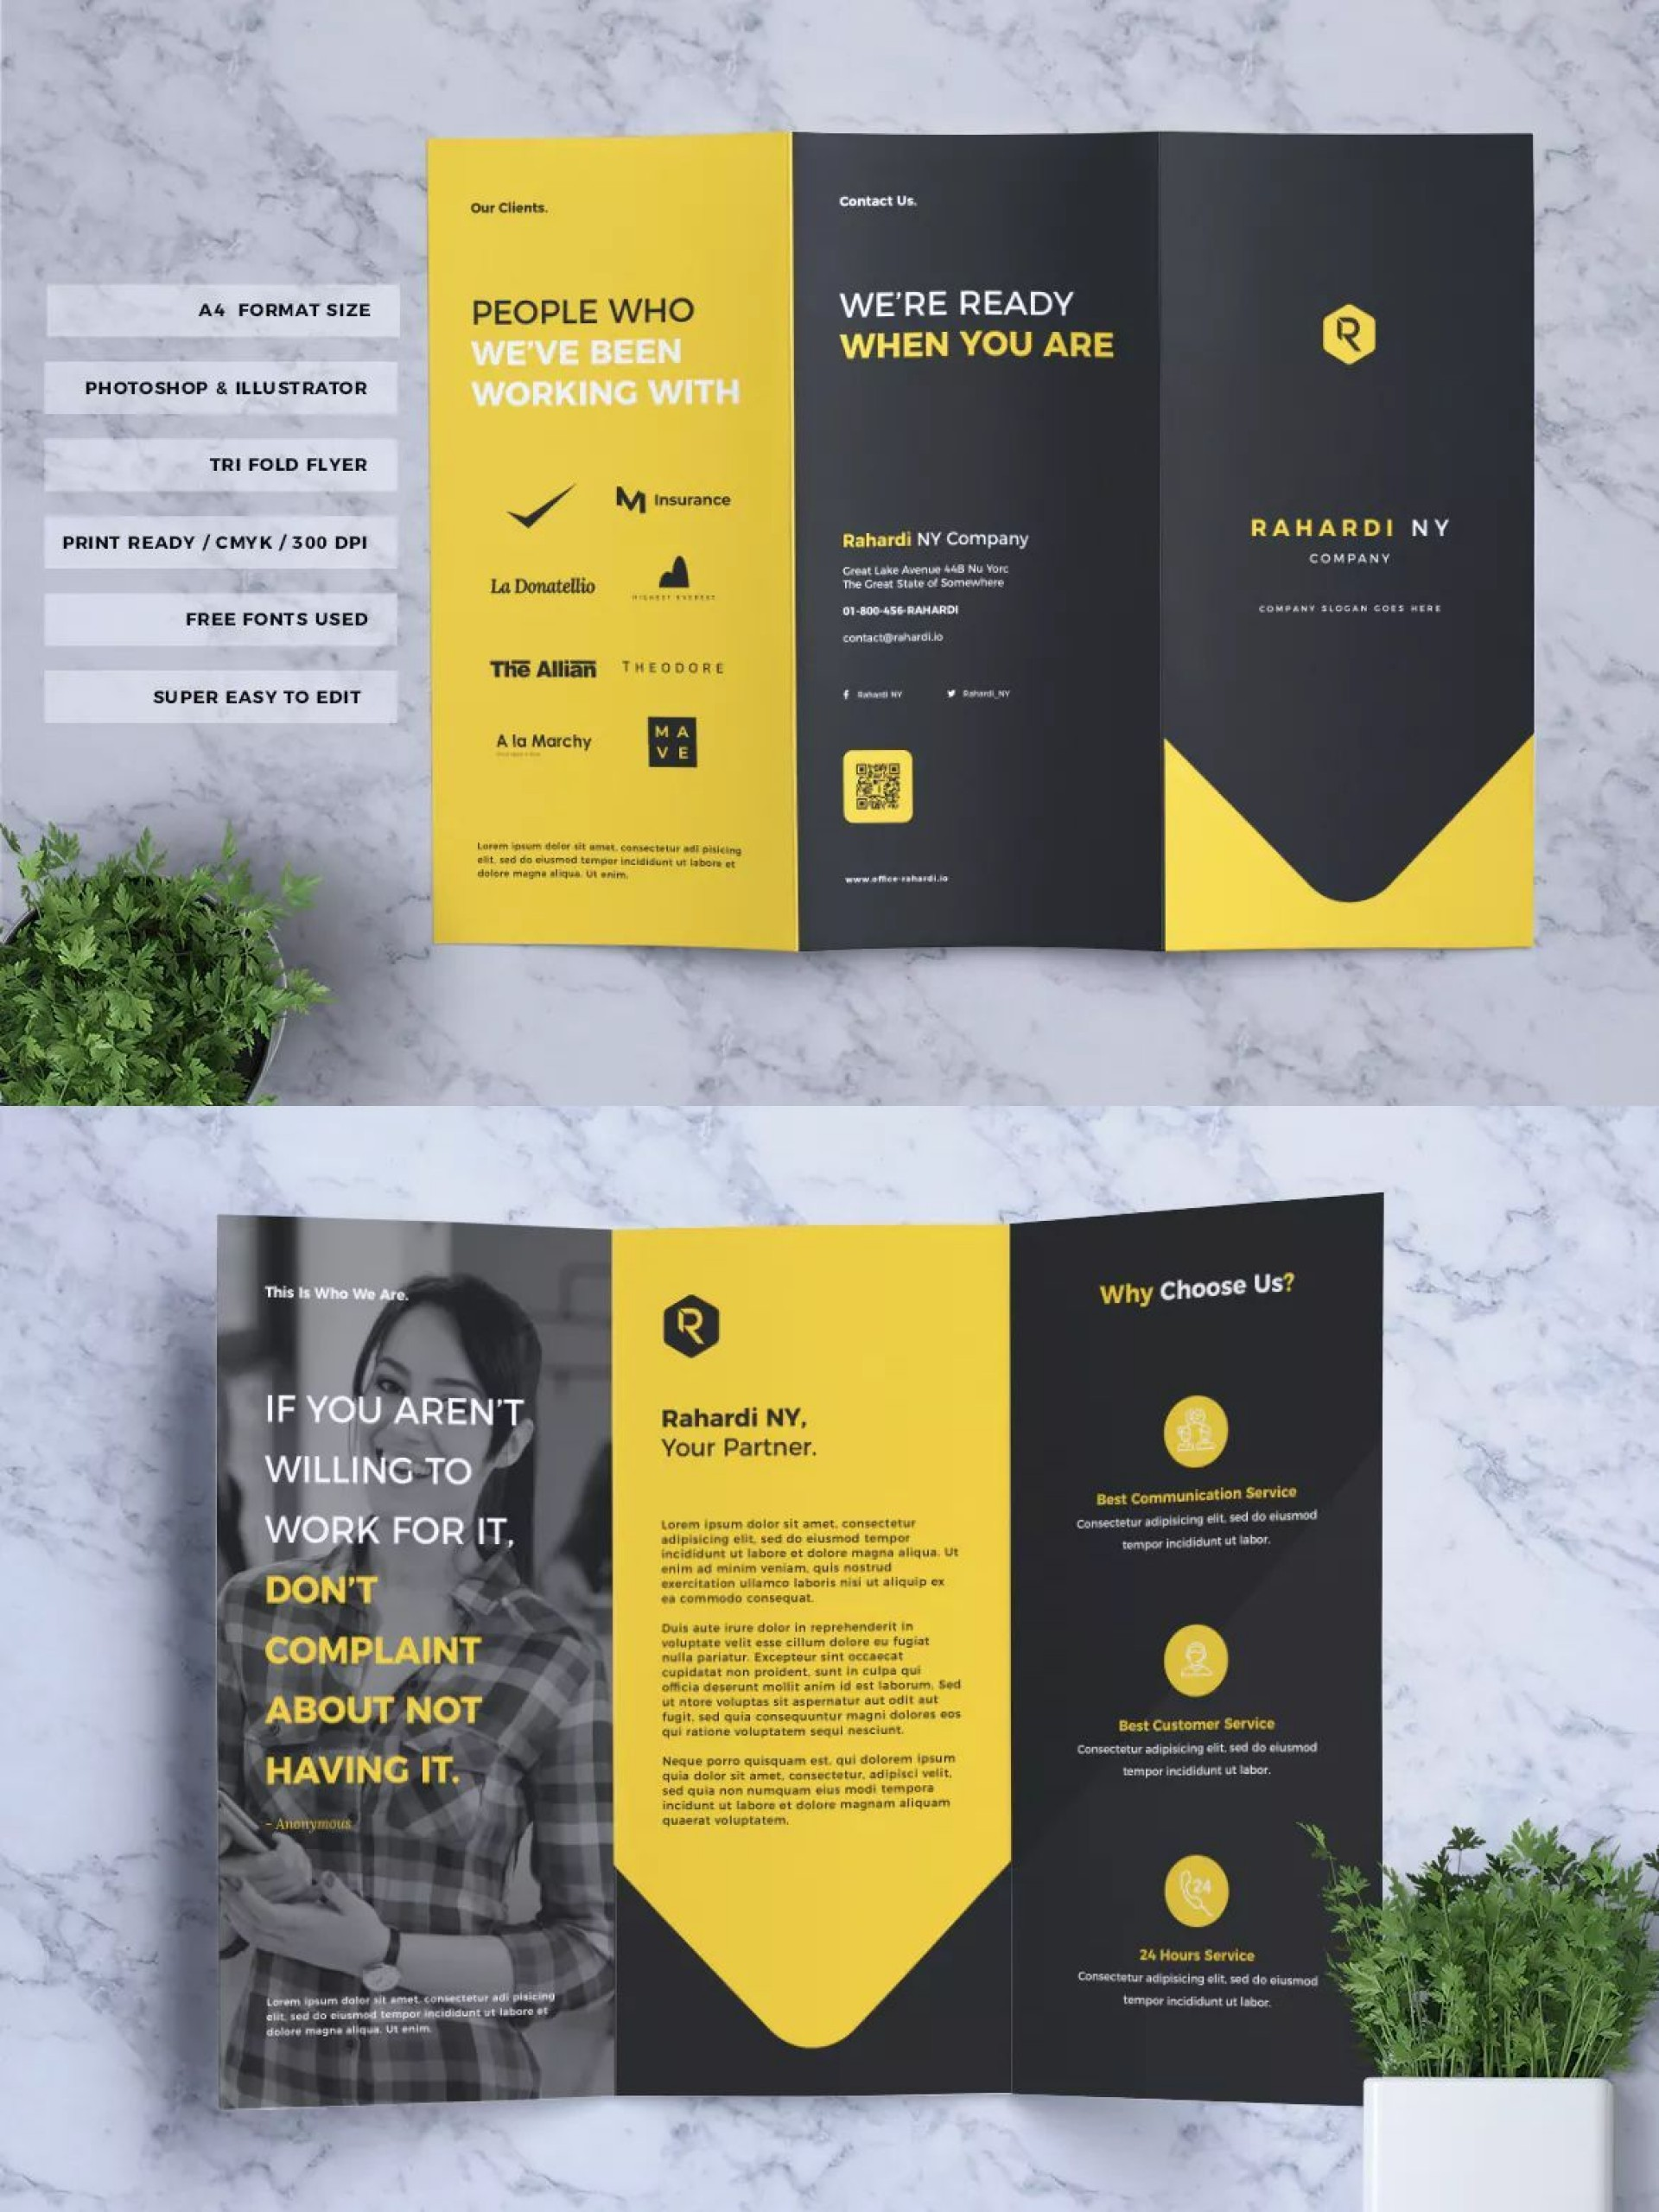 003 Shocking Photoshop Brochure Template Psd Free Download Inspiration 1920